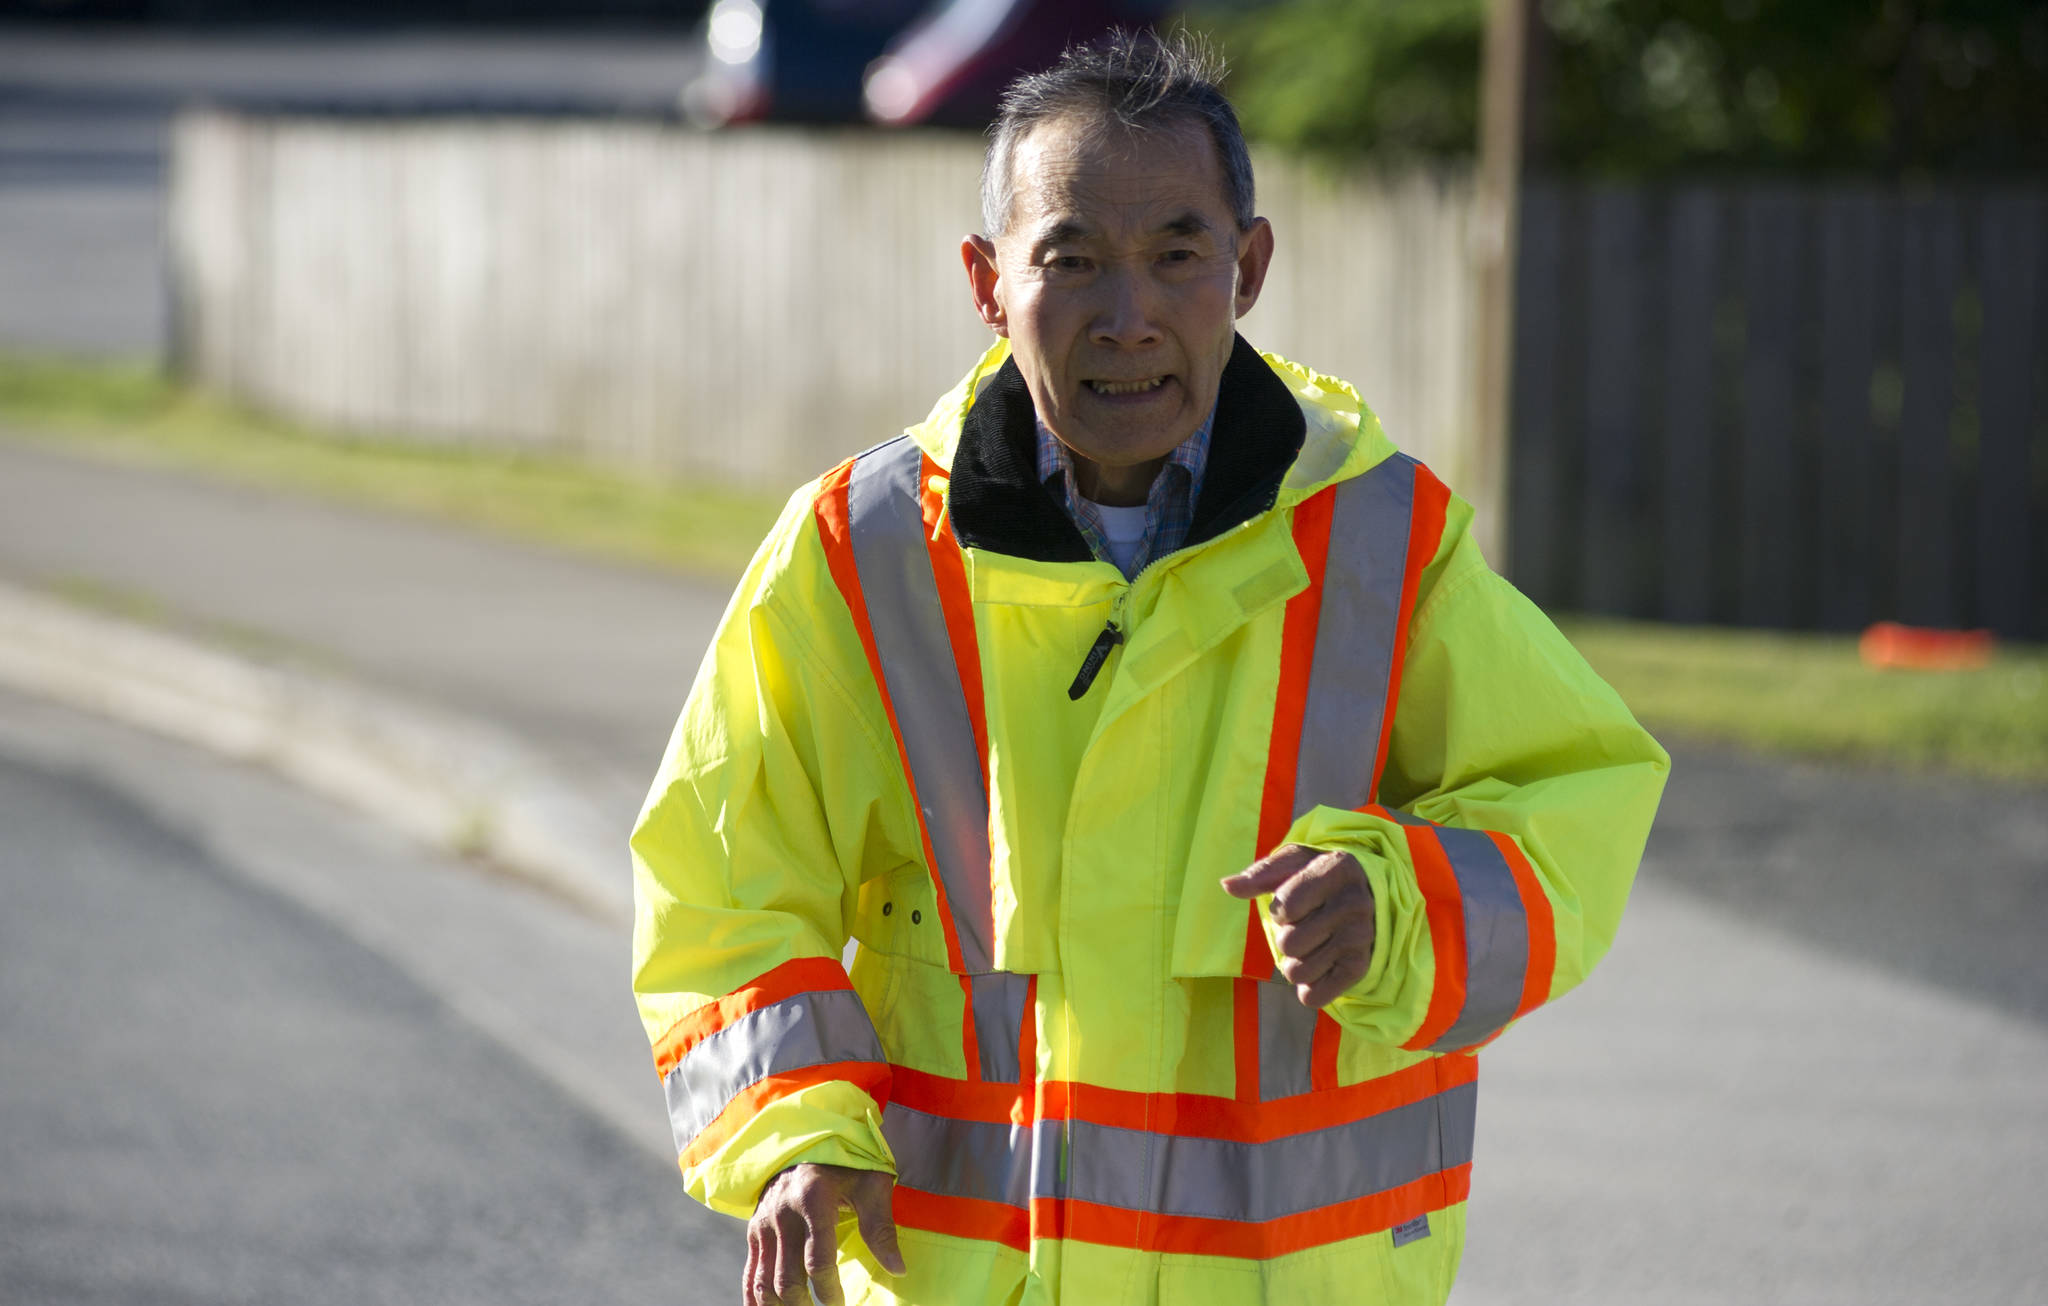 """Richard """"Dick"""" Goto, 75, finishes his 2-mile run on James Boulevard in the Mendenhall Valley on Friday. (Nolin Ainsworth 